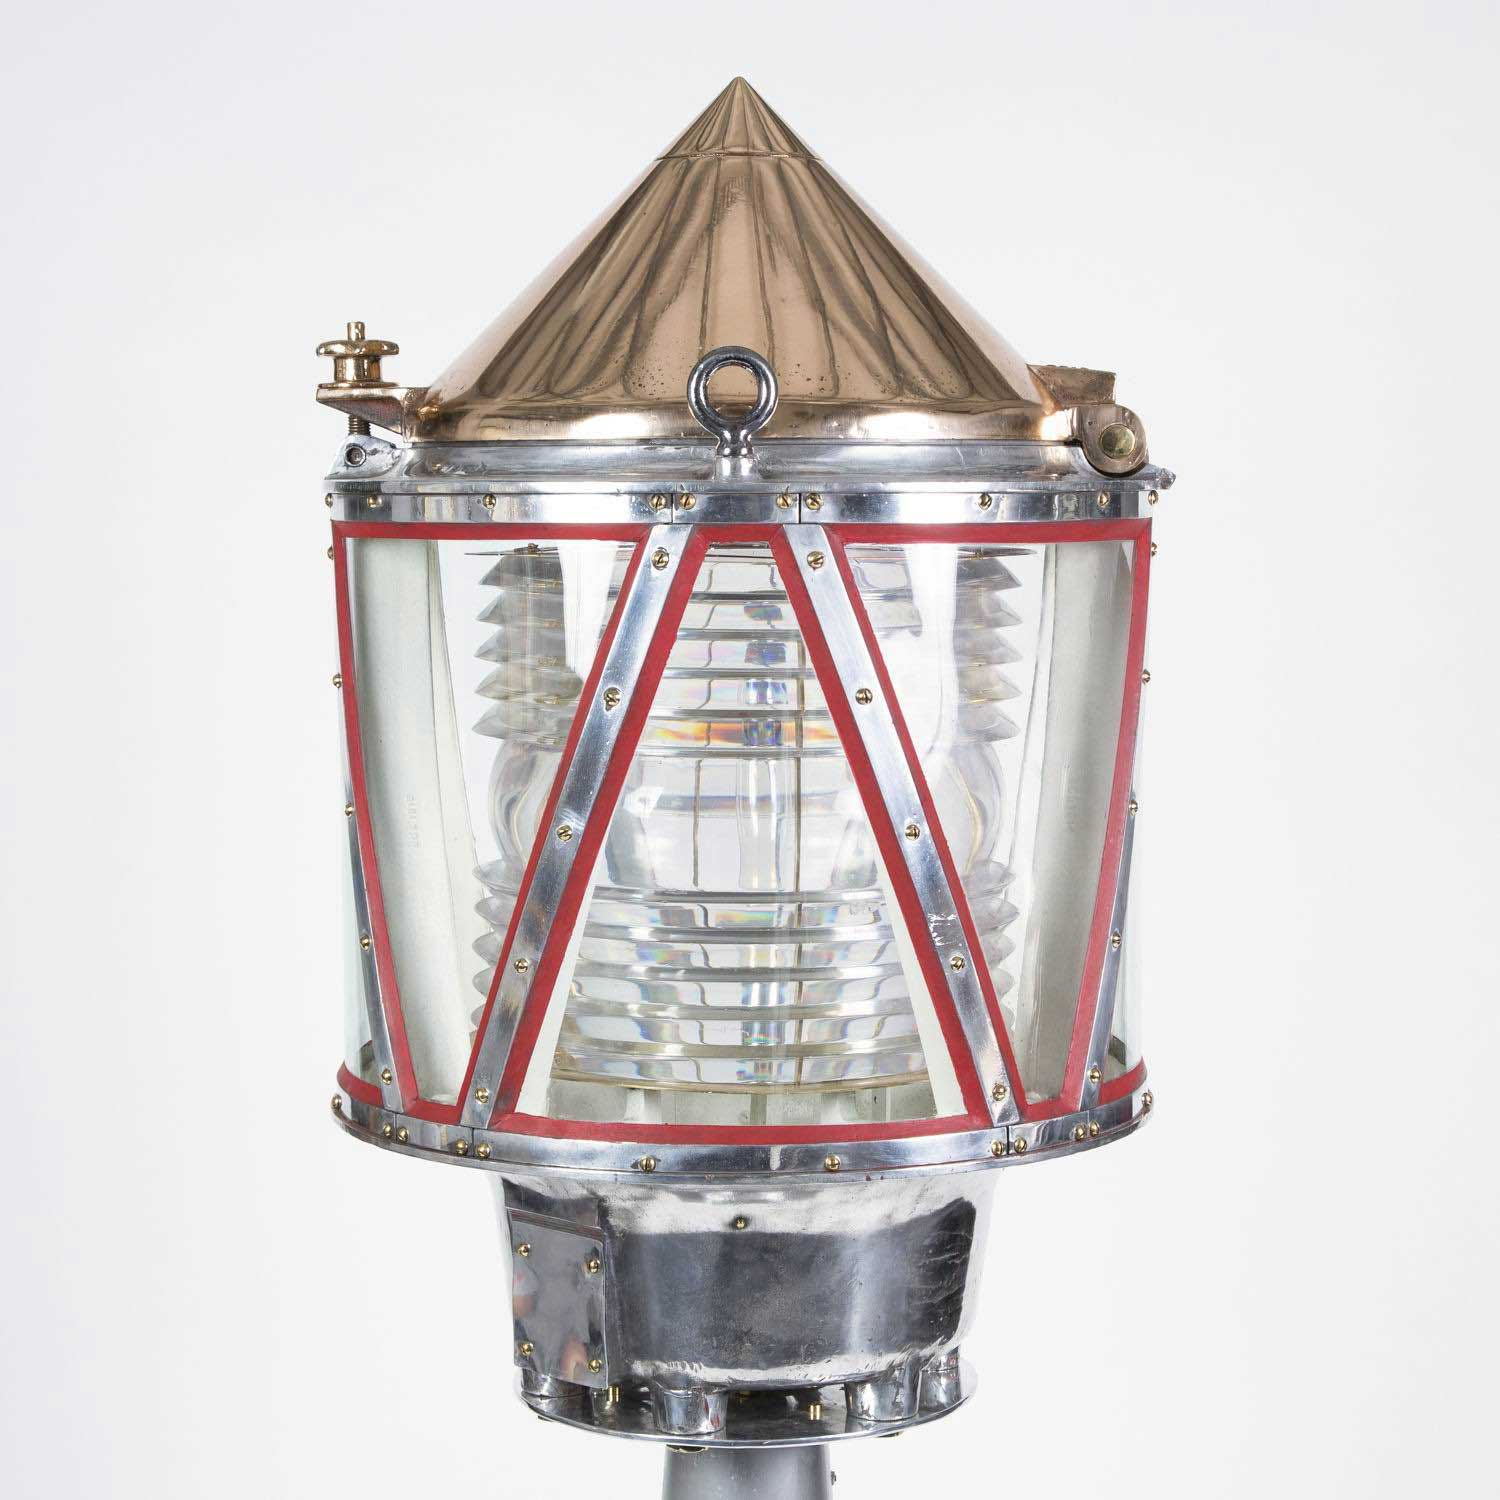 NAVIGATION LIGHT BY AGA